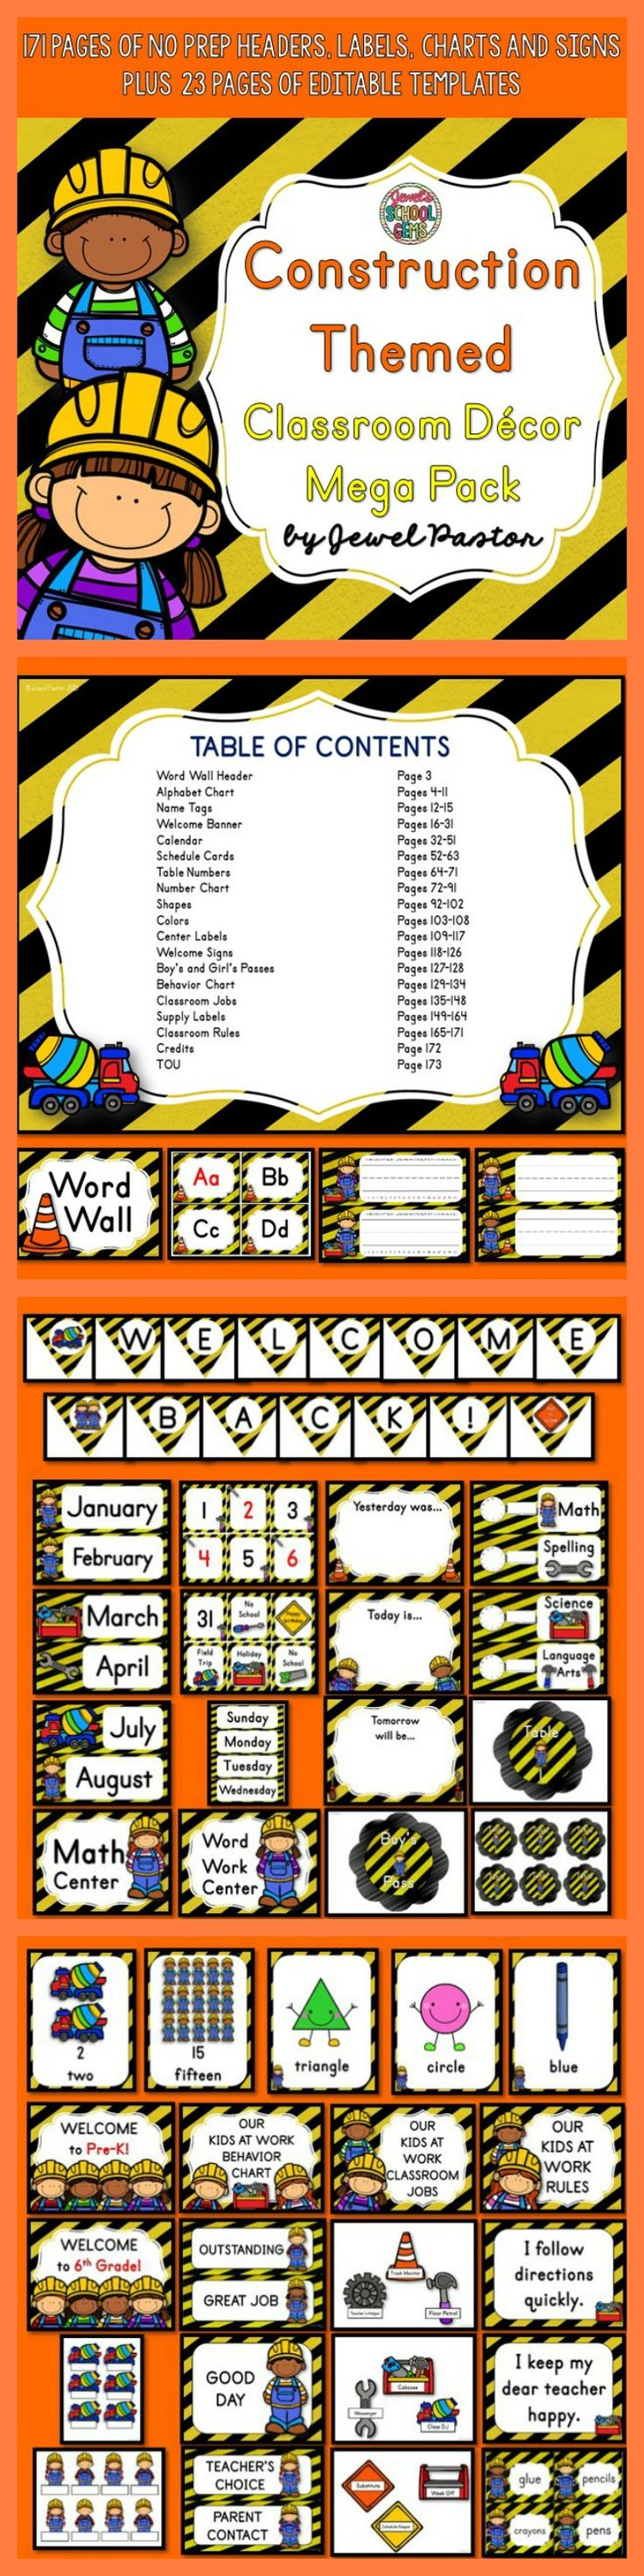 Construction Theme : Construction Theme  Bring cute kids at work in your classroom with this Construction Themed Classroom Decor Mega Pack. It comes with 171 pages of NO PREP HEADERS, LABELS, CHARTS AND SIGNS plus 23 pages of EDITABLE PARTS/TEMPLATES.